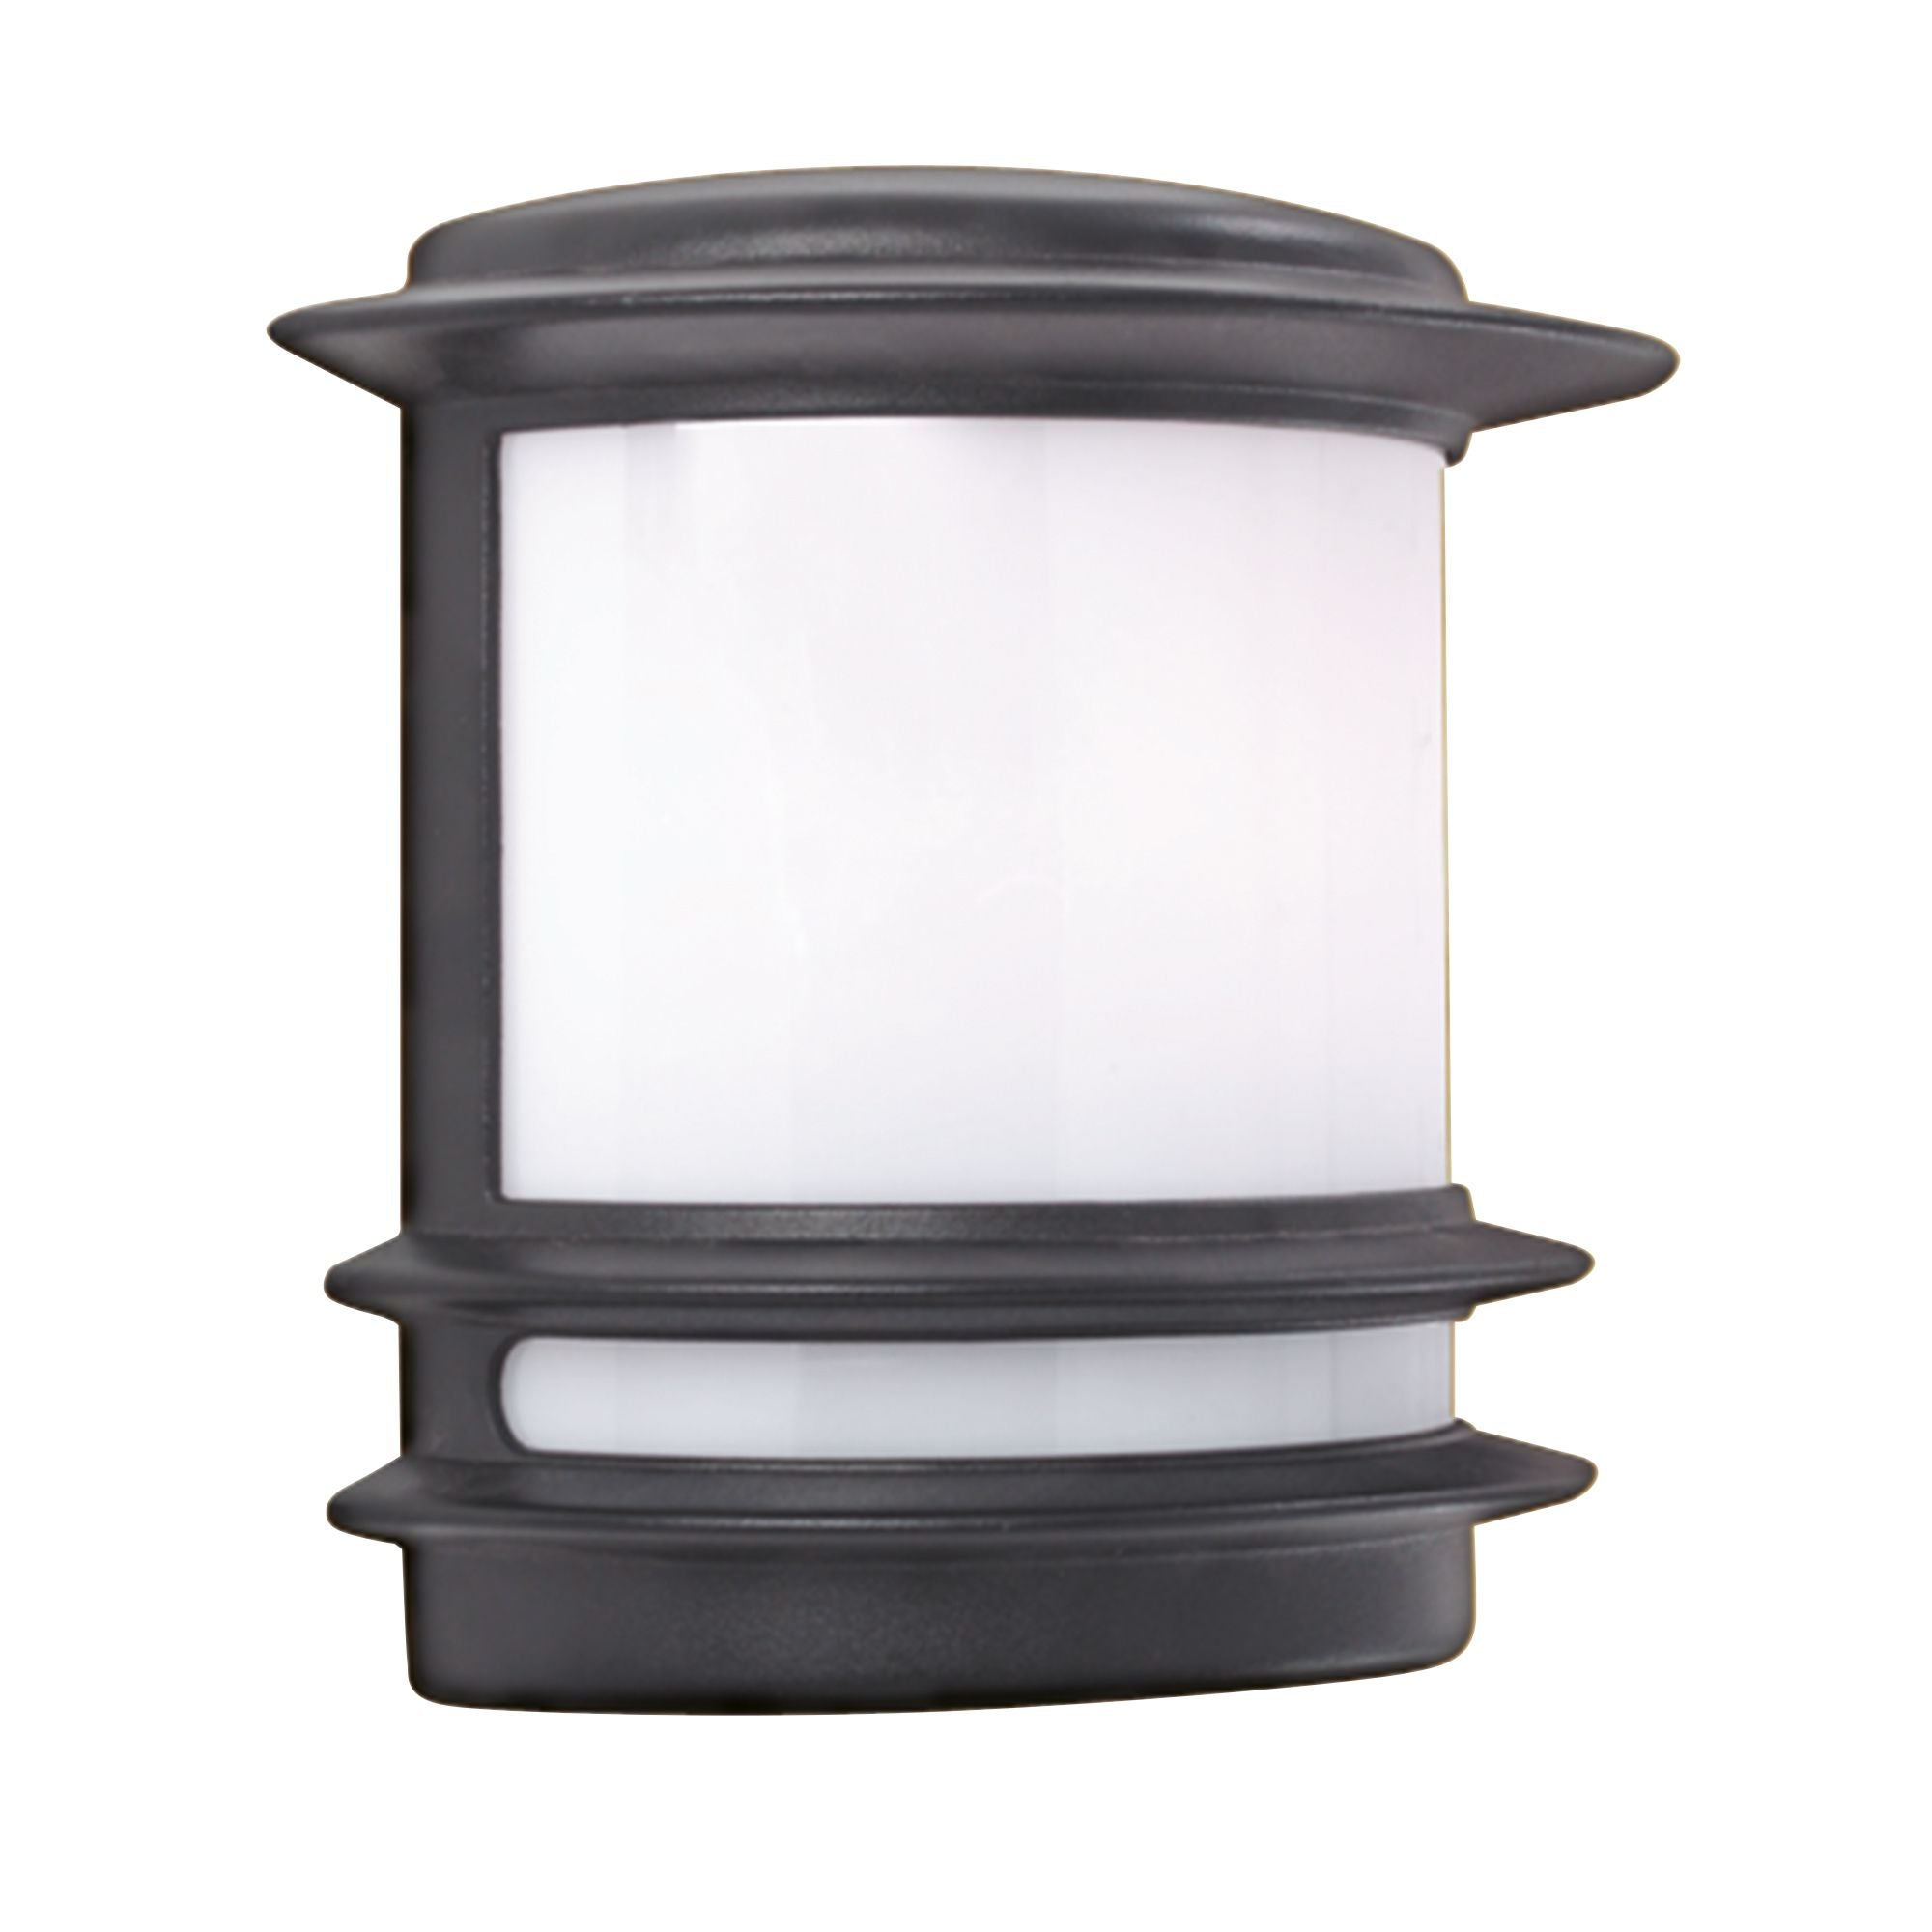 STROUD BOLLARD/POST OUTDOOR HALF WALL LIGHT BLACK ALUMINIUM